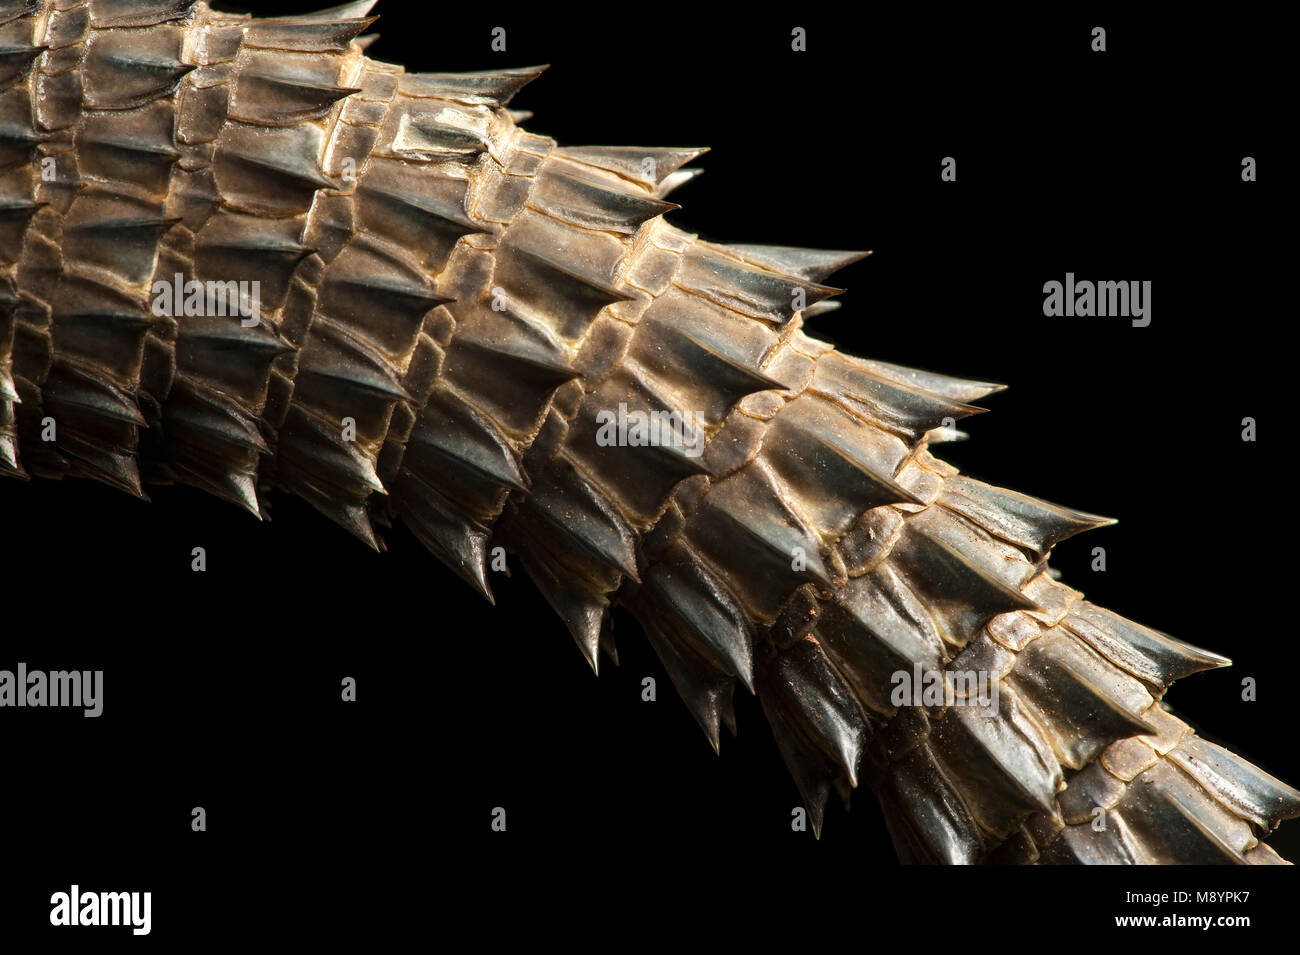 Tail spines of the lizard Madagascar Swift (Oplurus cyclurus), an endemic arboreal Malagasy iguana (Opluridae), - Stock Image